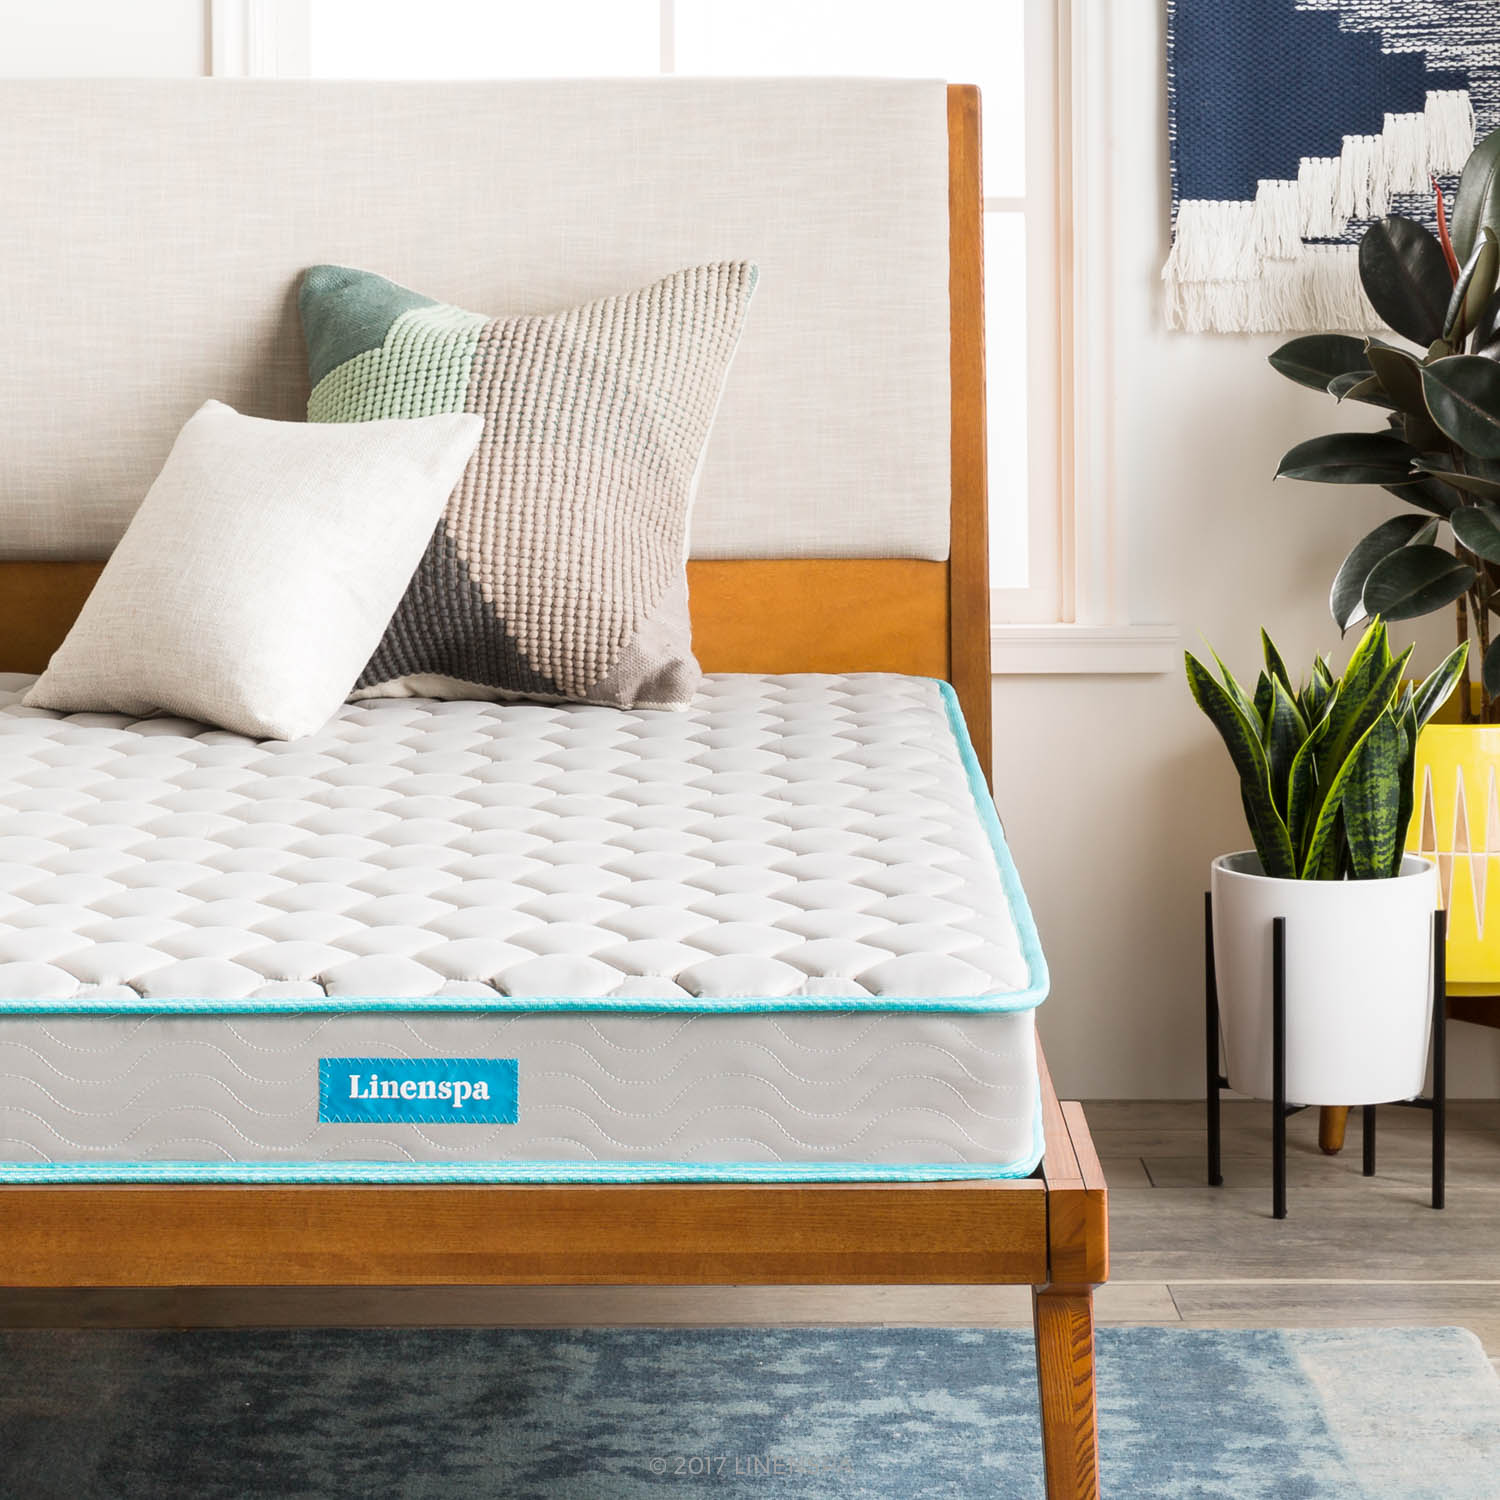 Linenspa 6-inch Innerspring Mattress-in-a-Box, Multiple Sizes